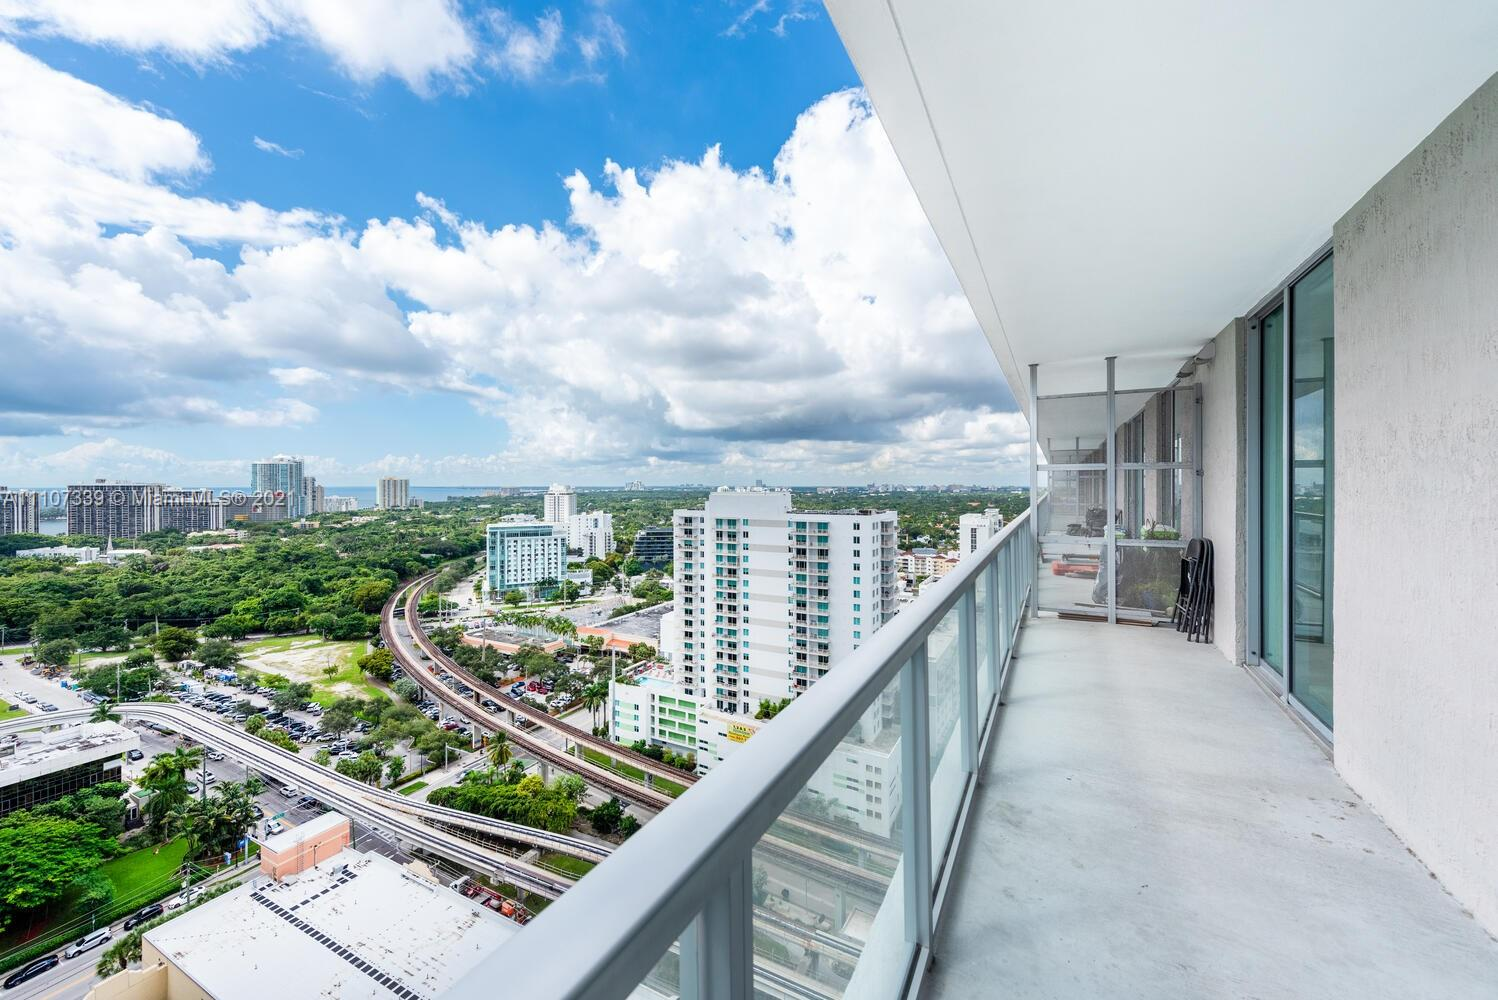 THE AXIS ON BRICKELL COND Condo,For Rent,THE AXIS ON BRICKELL COND Brickell,realty,broker,condos near me